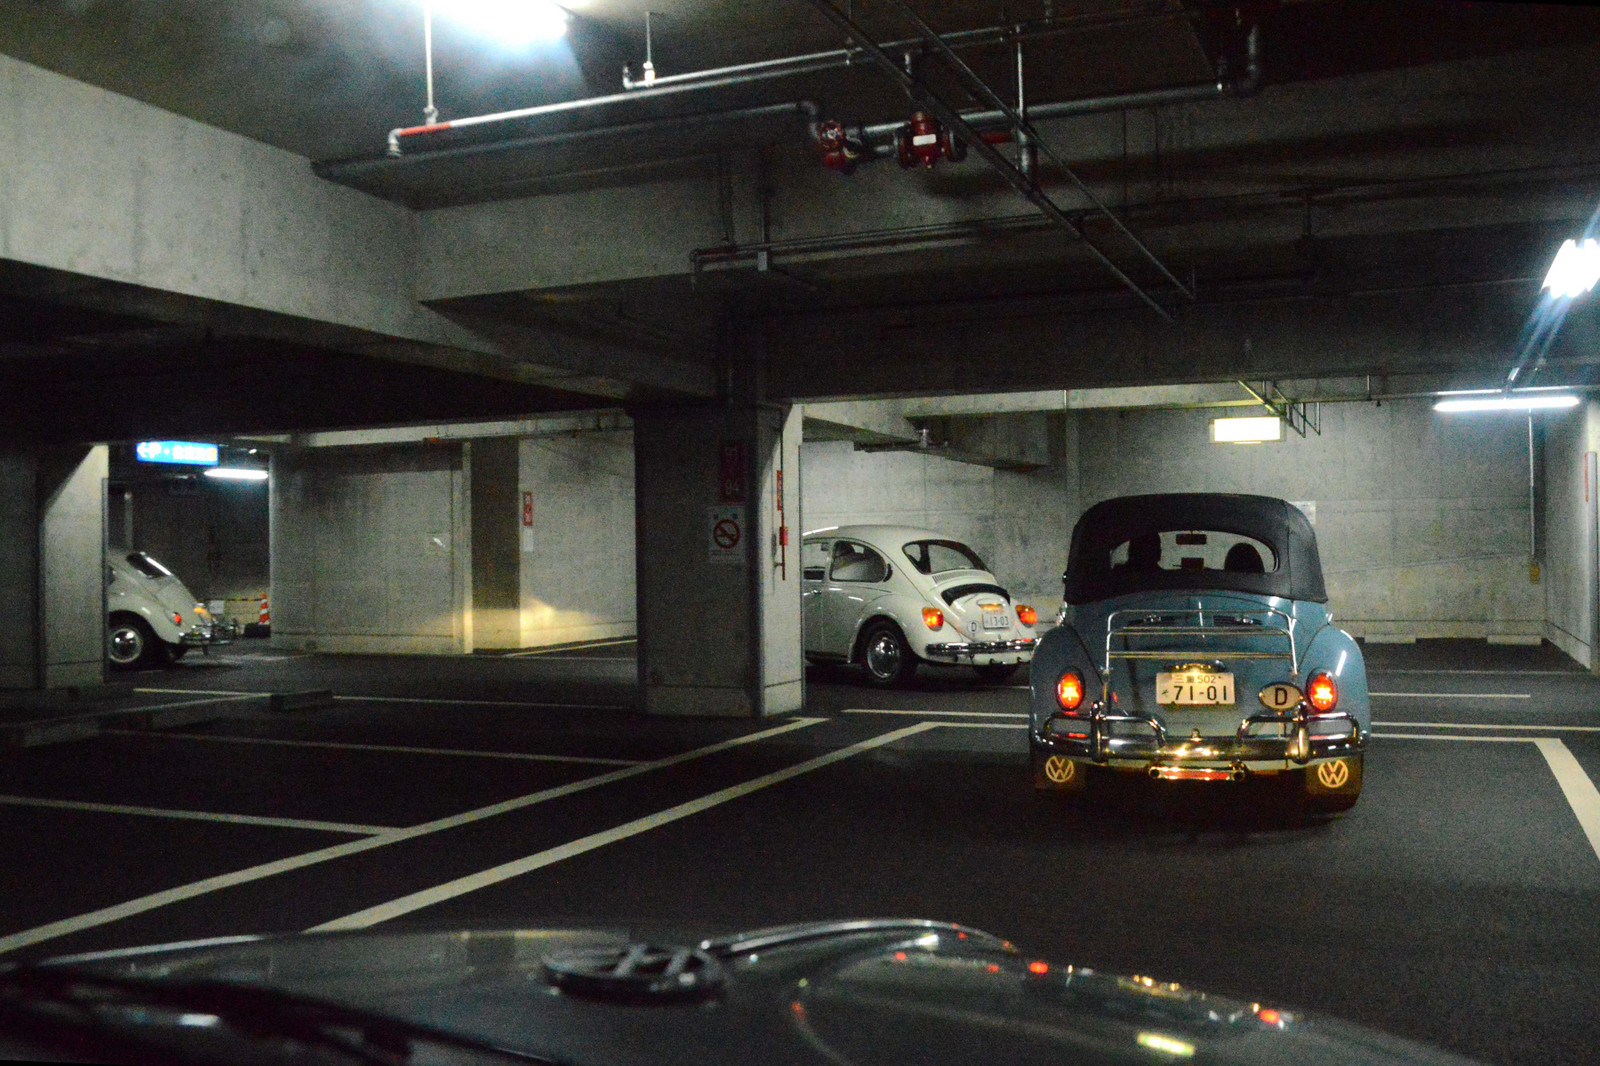 Dsc_0146_vw_out_of_parking